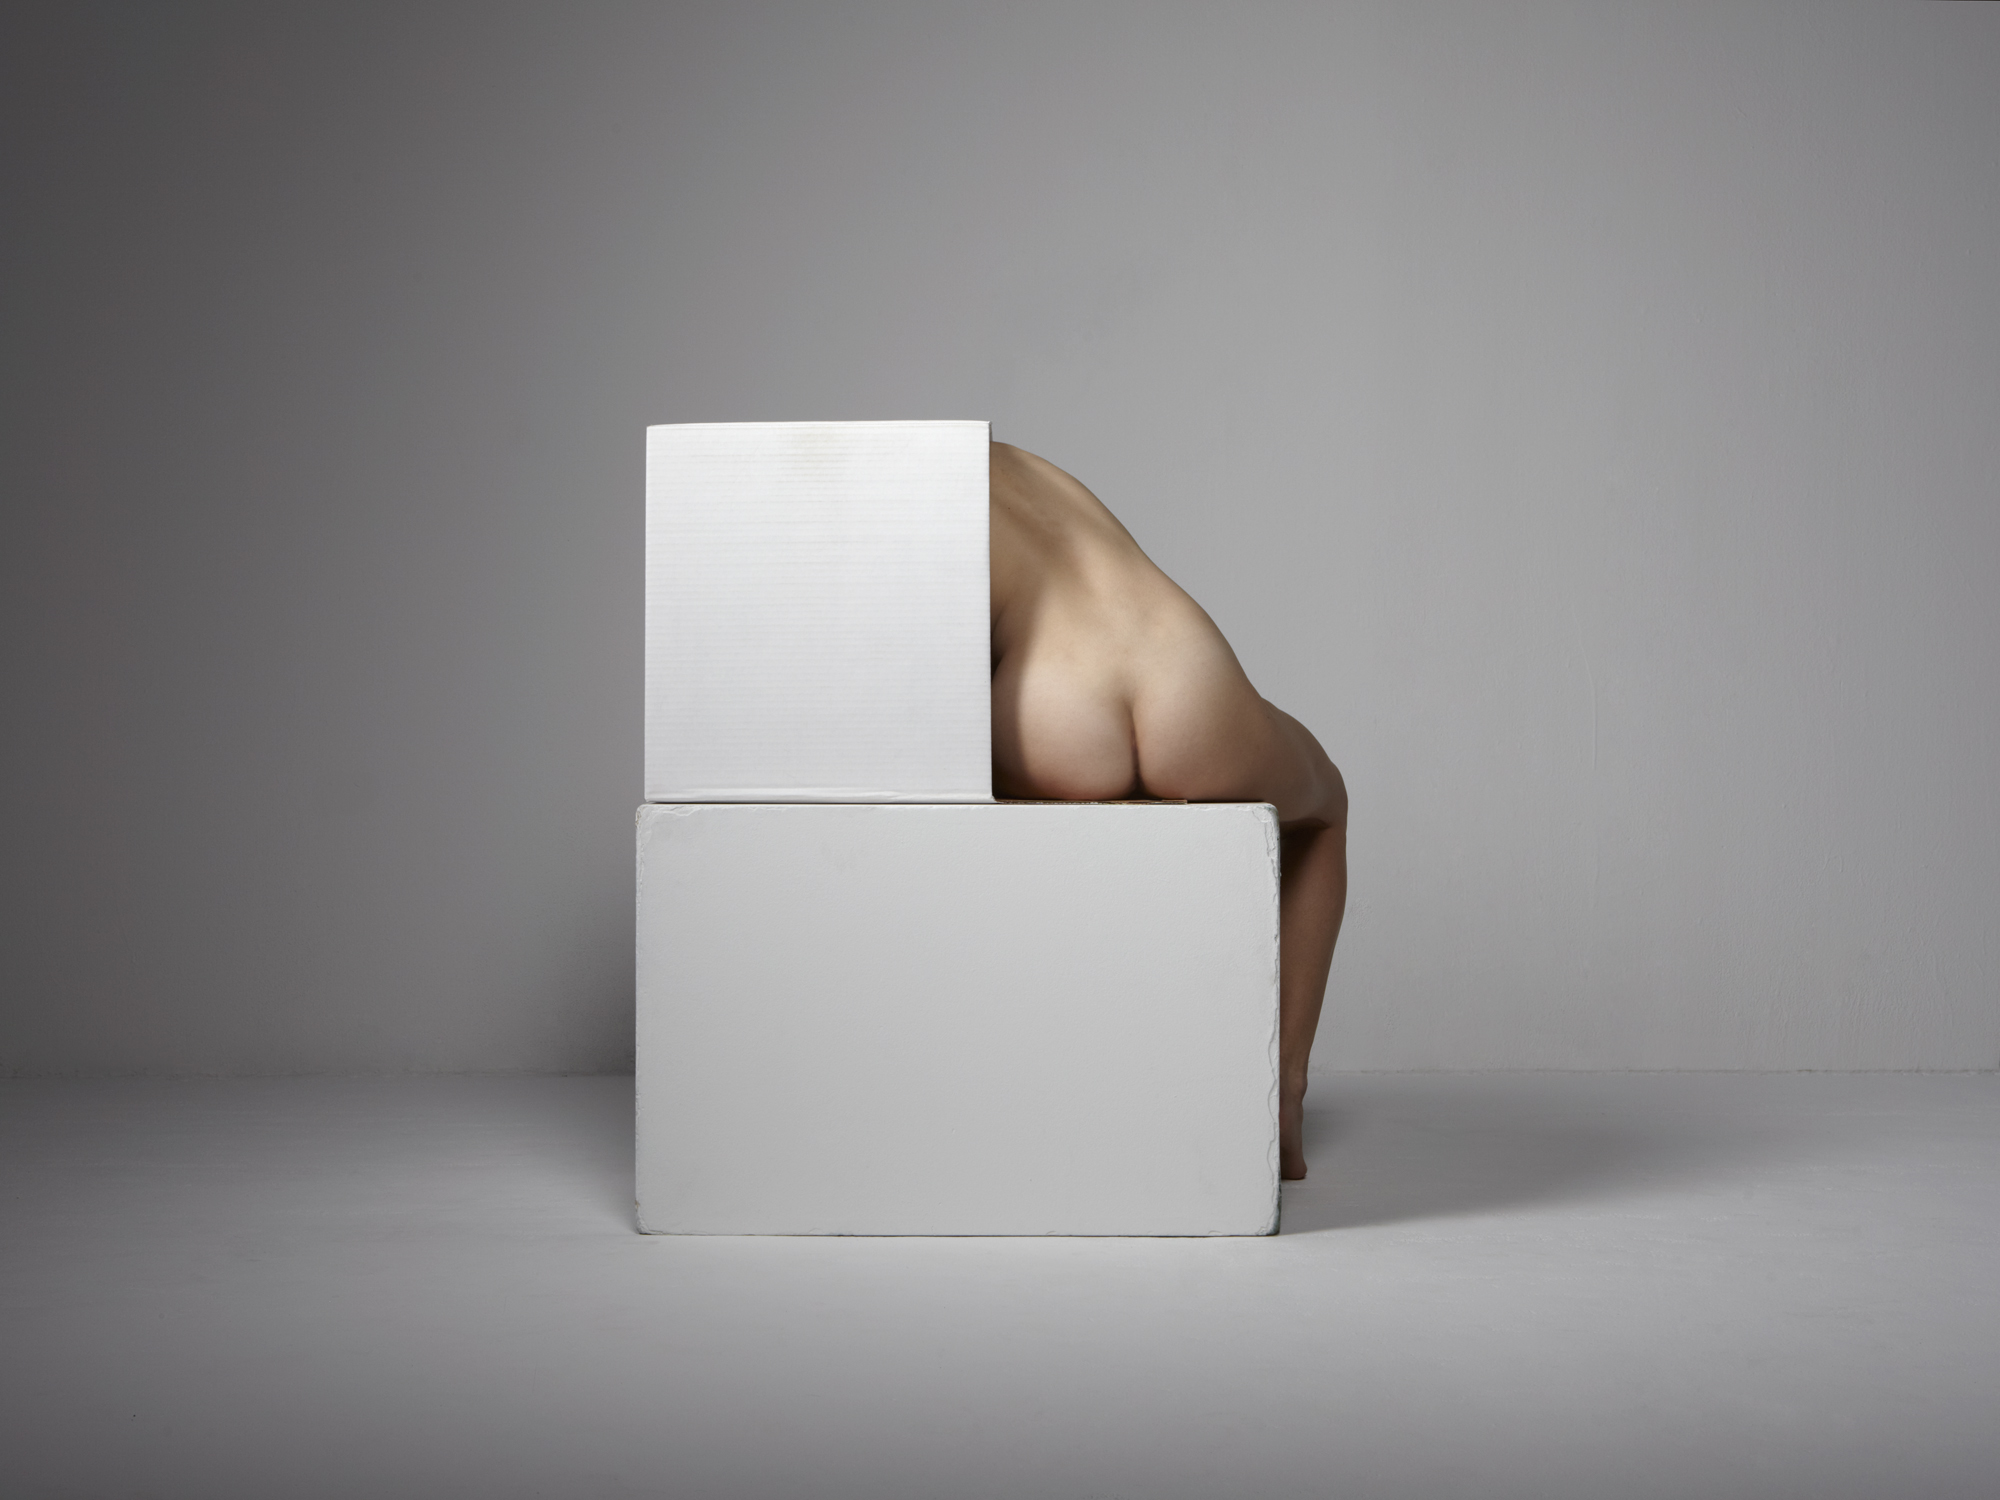 0013_figure_with_pedestal_and_box.jpg